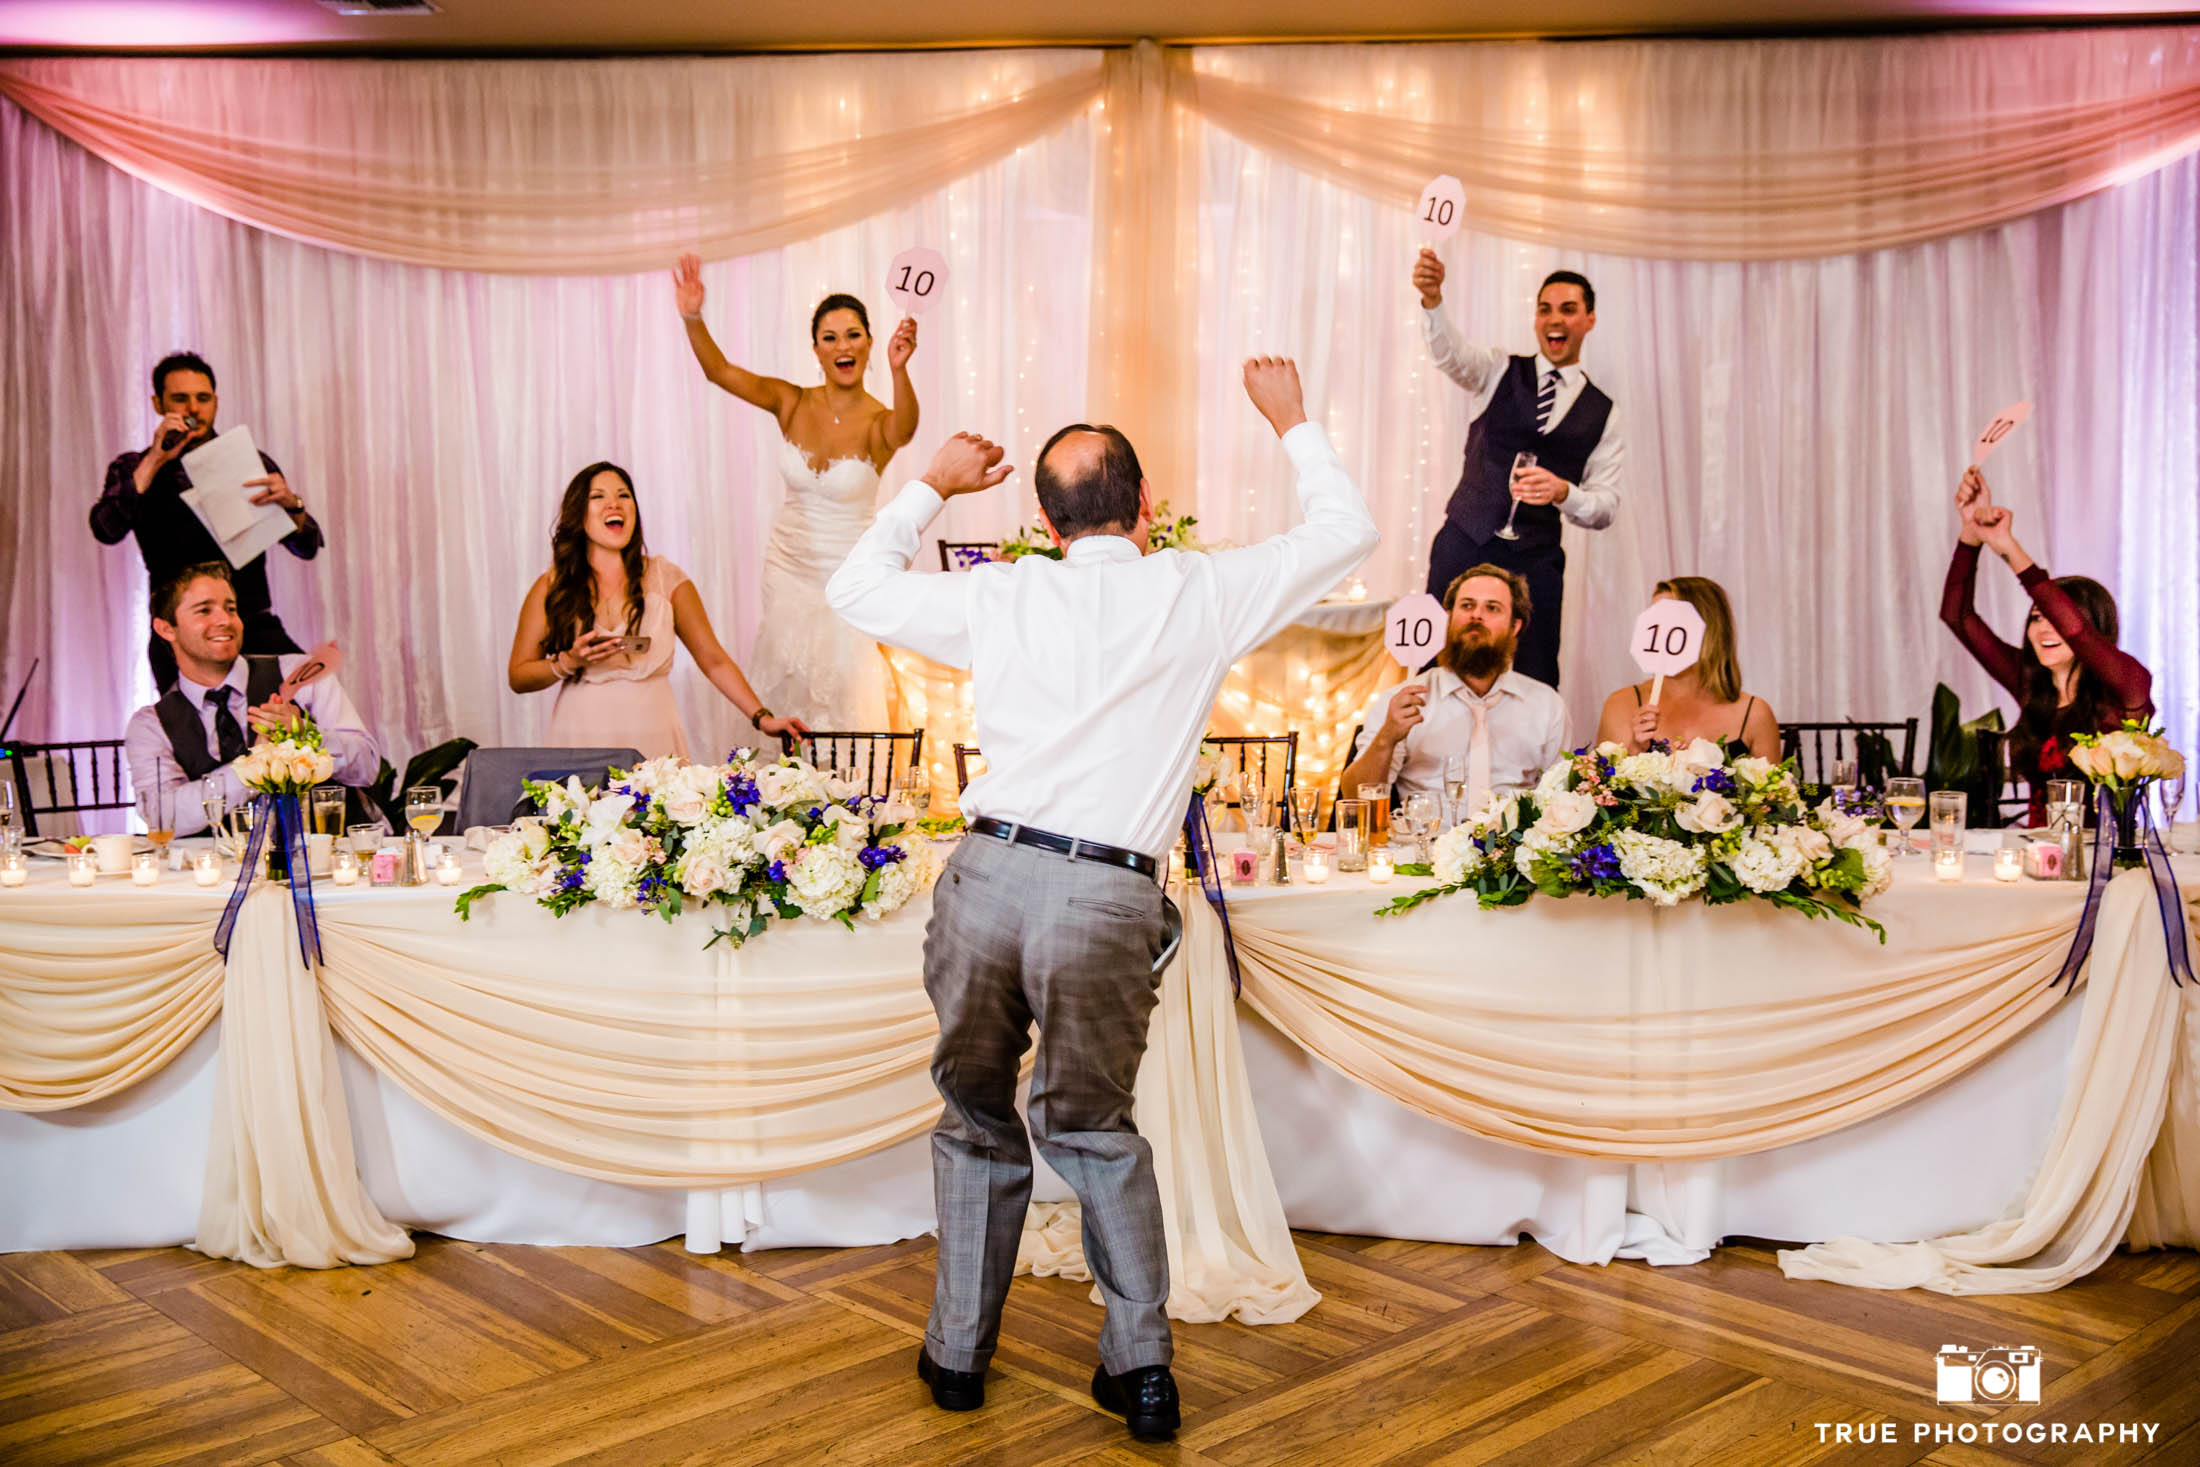 Wedding reception games create a unique experience for guest